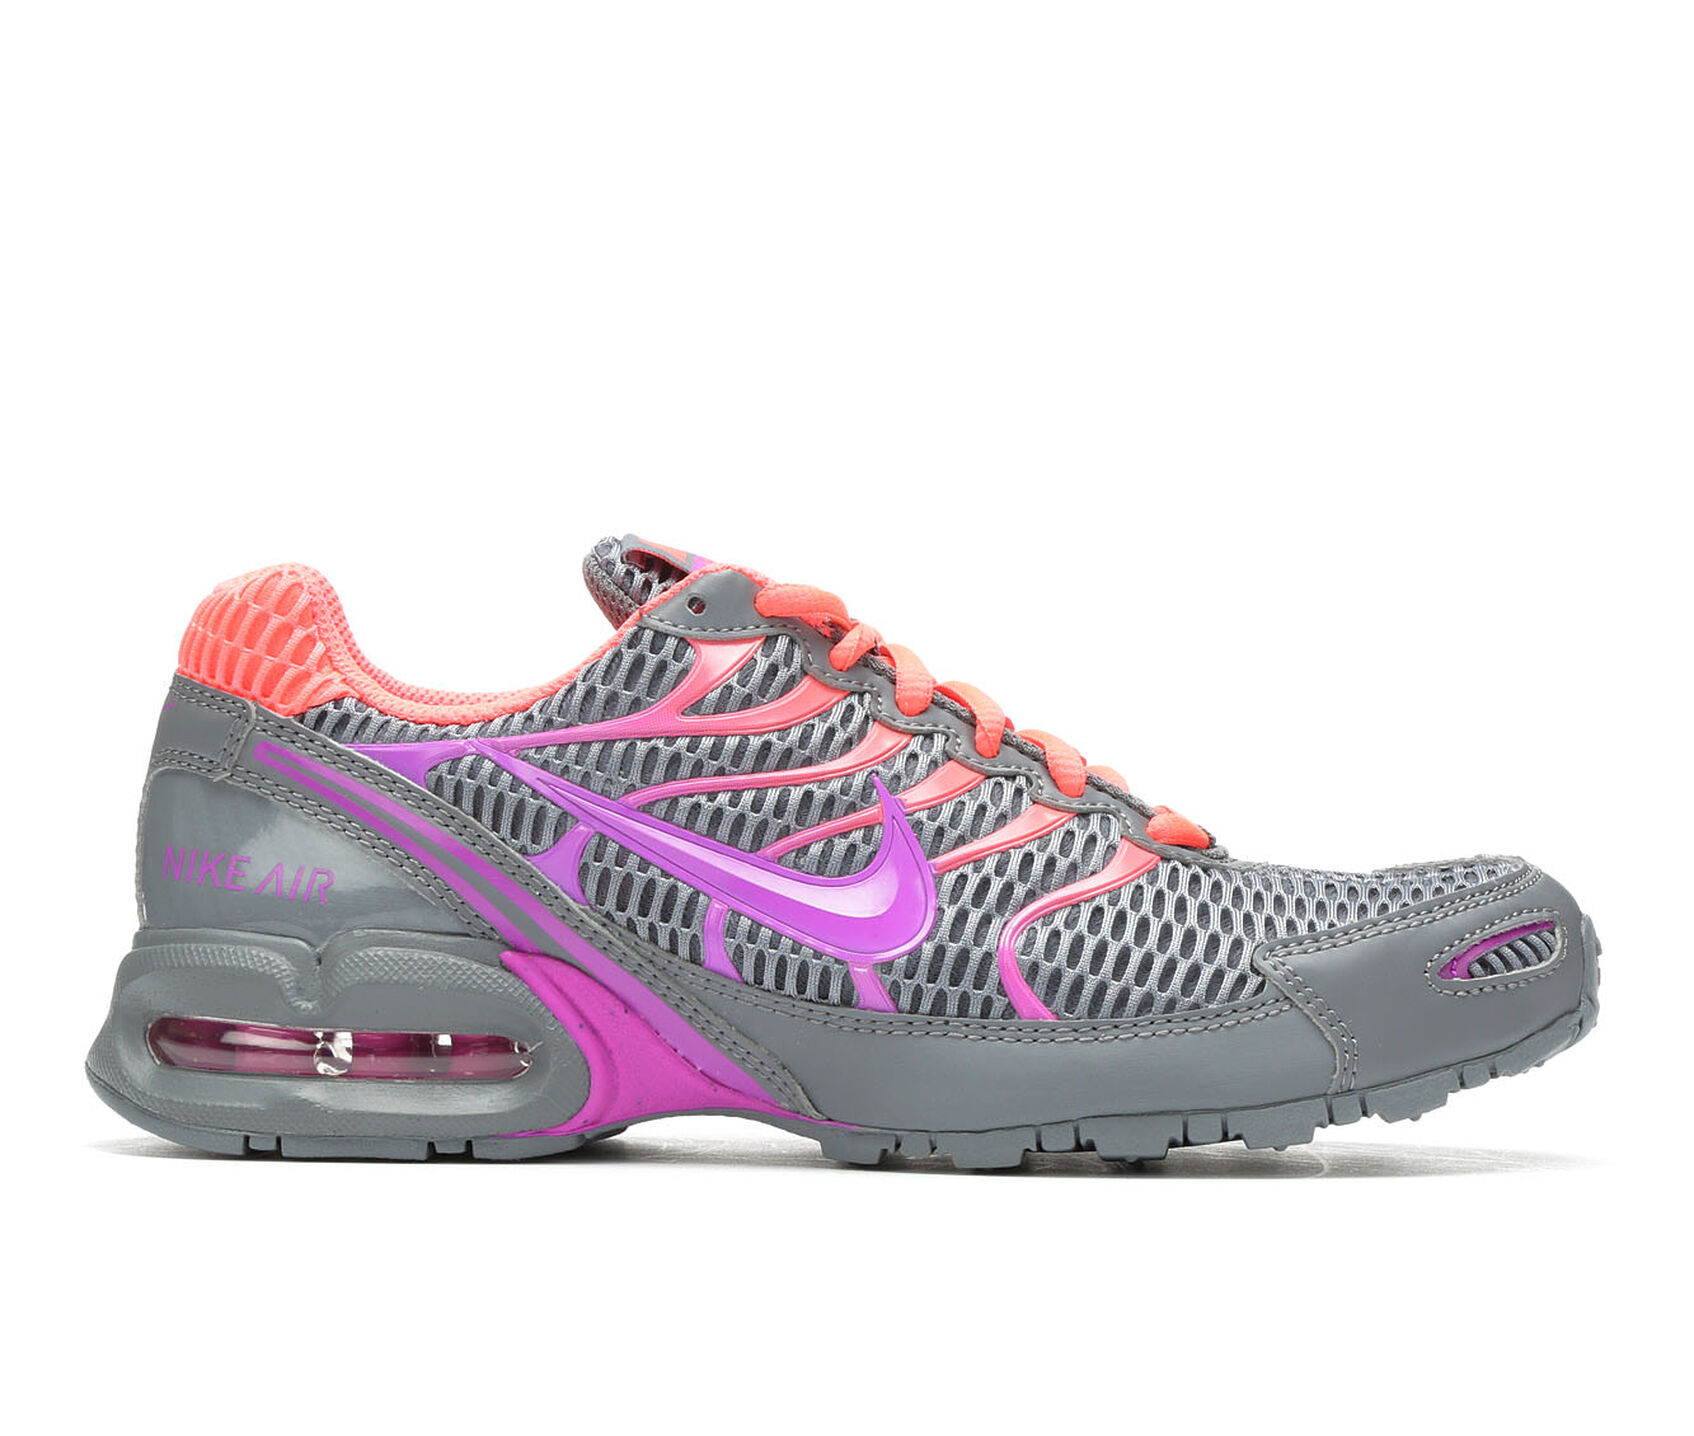 5b1349a975 Women's Nike Air Max Torch 4 Running Shoes | Shoe Carnival